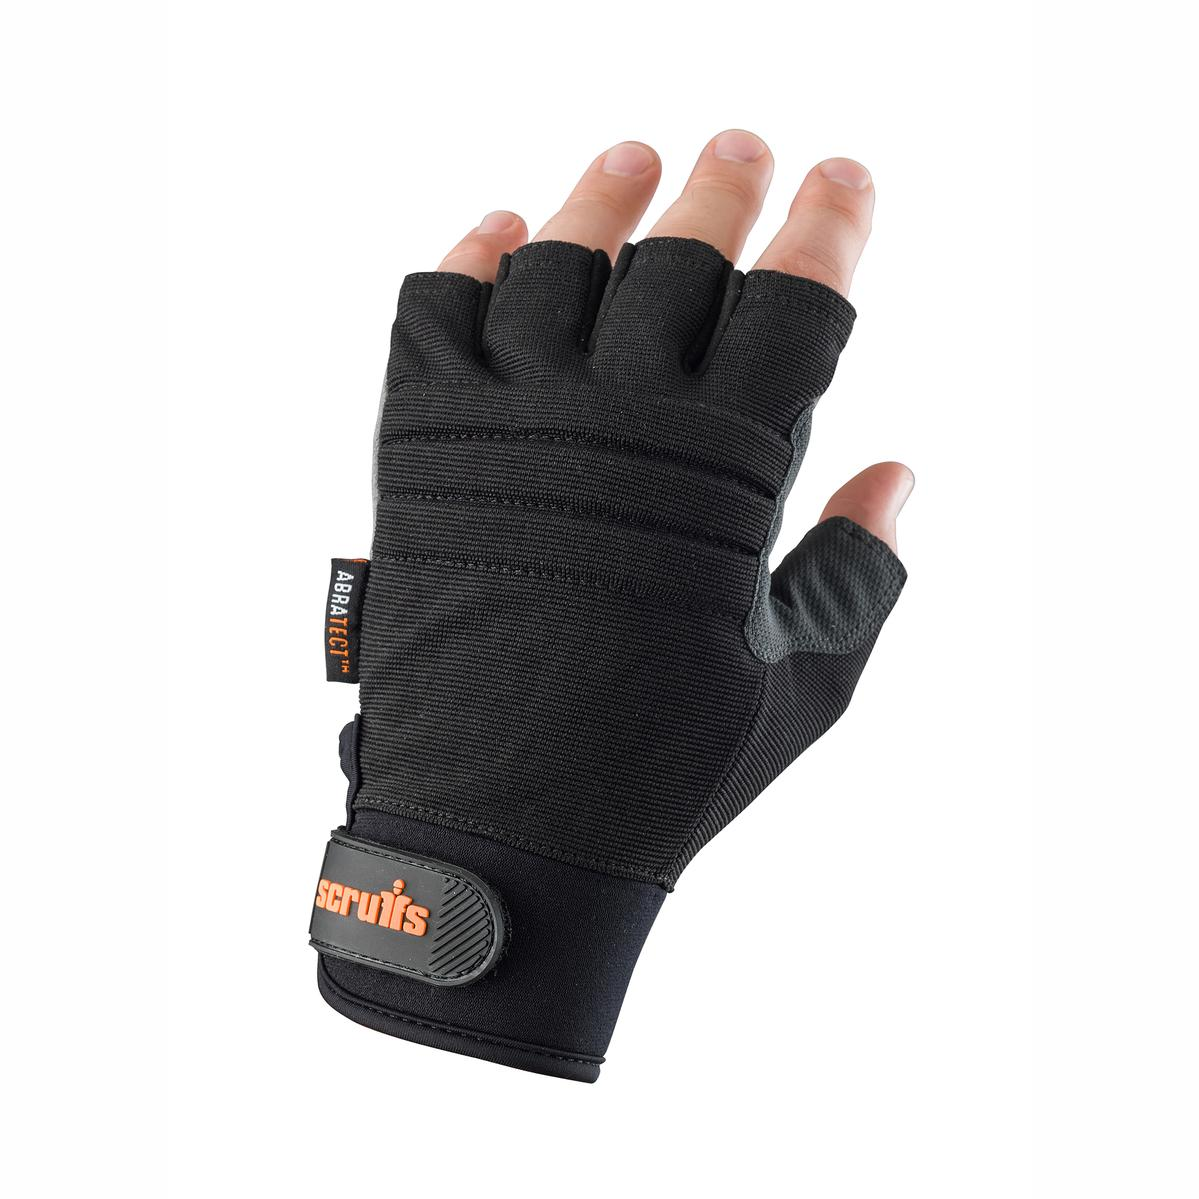 Scruffs Trade Fingerless Gloves